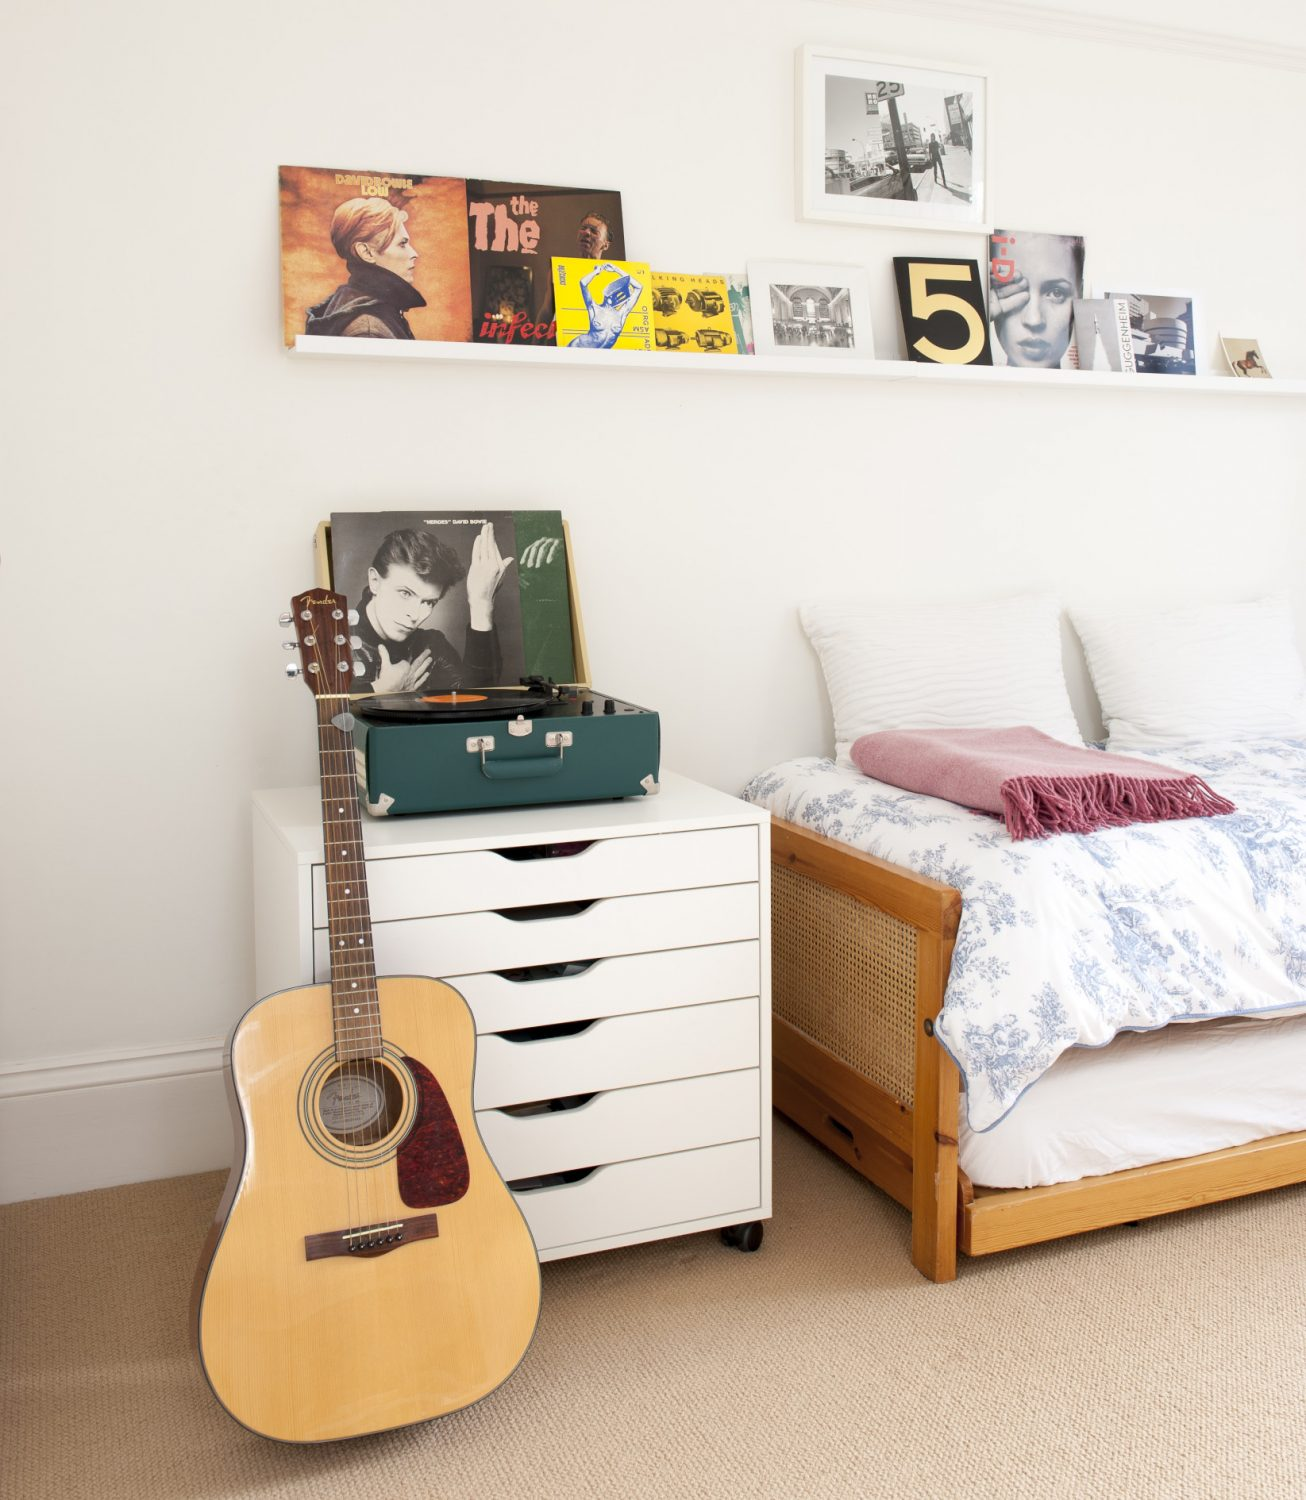 Musical elements are found throughout the home